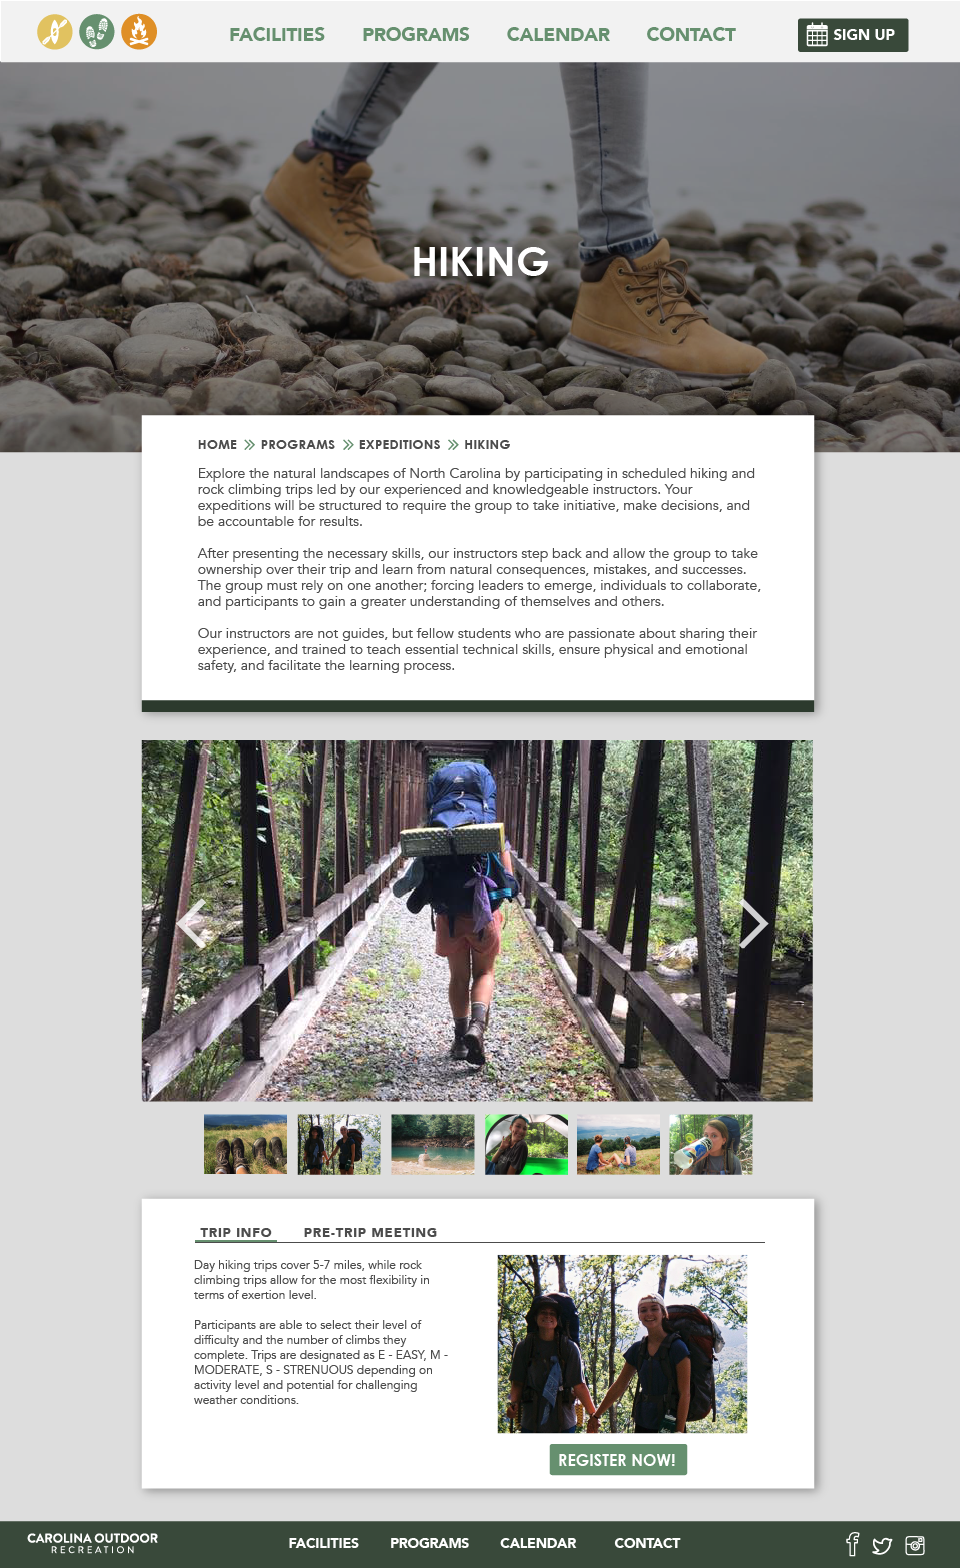 OEC_website_v8_Program -- Hiking.png